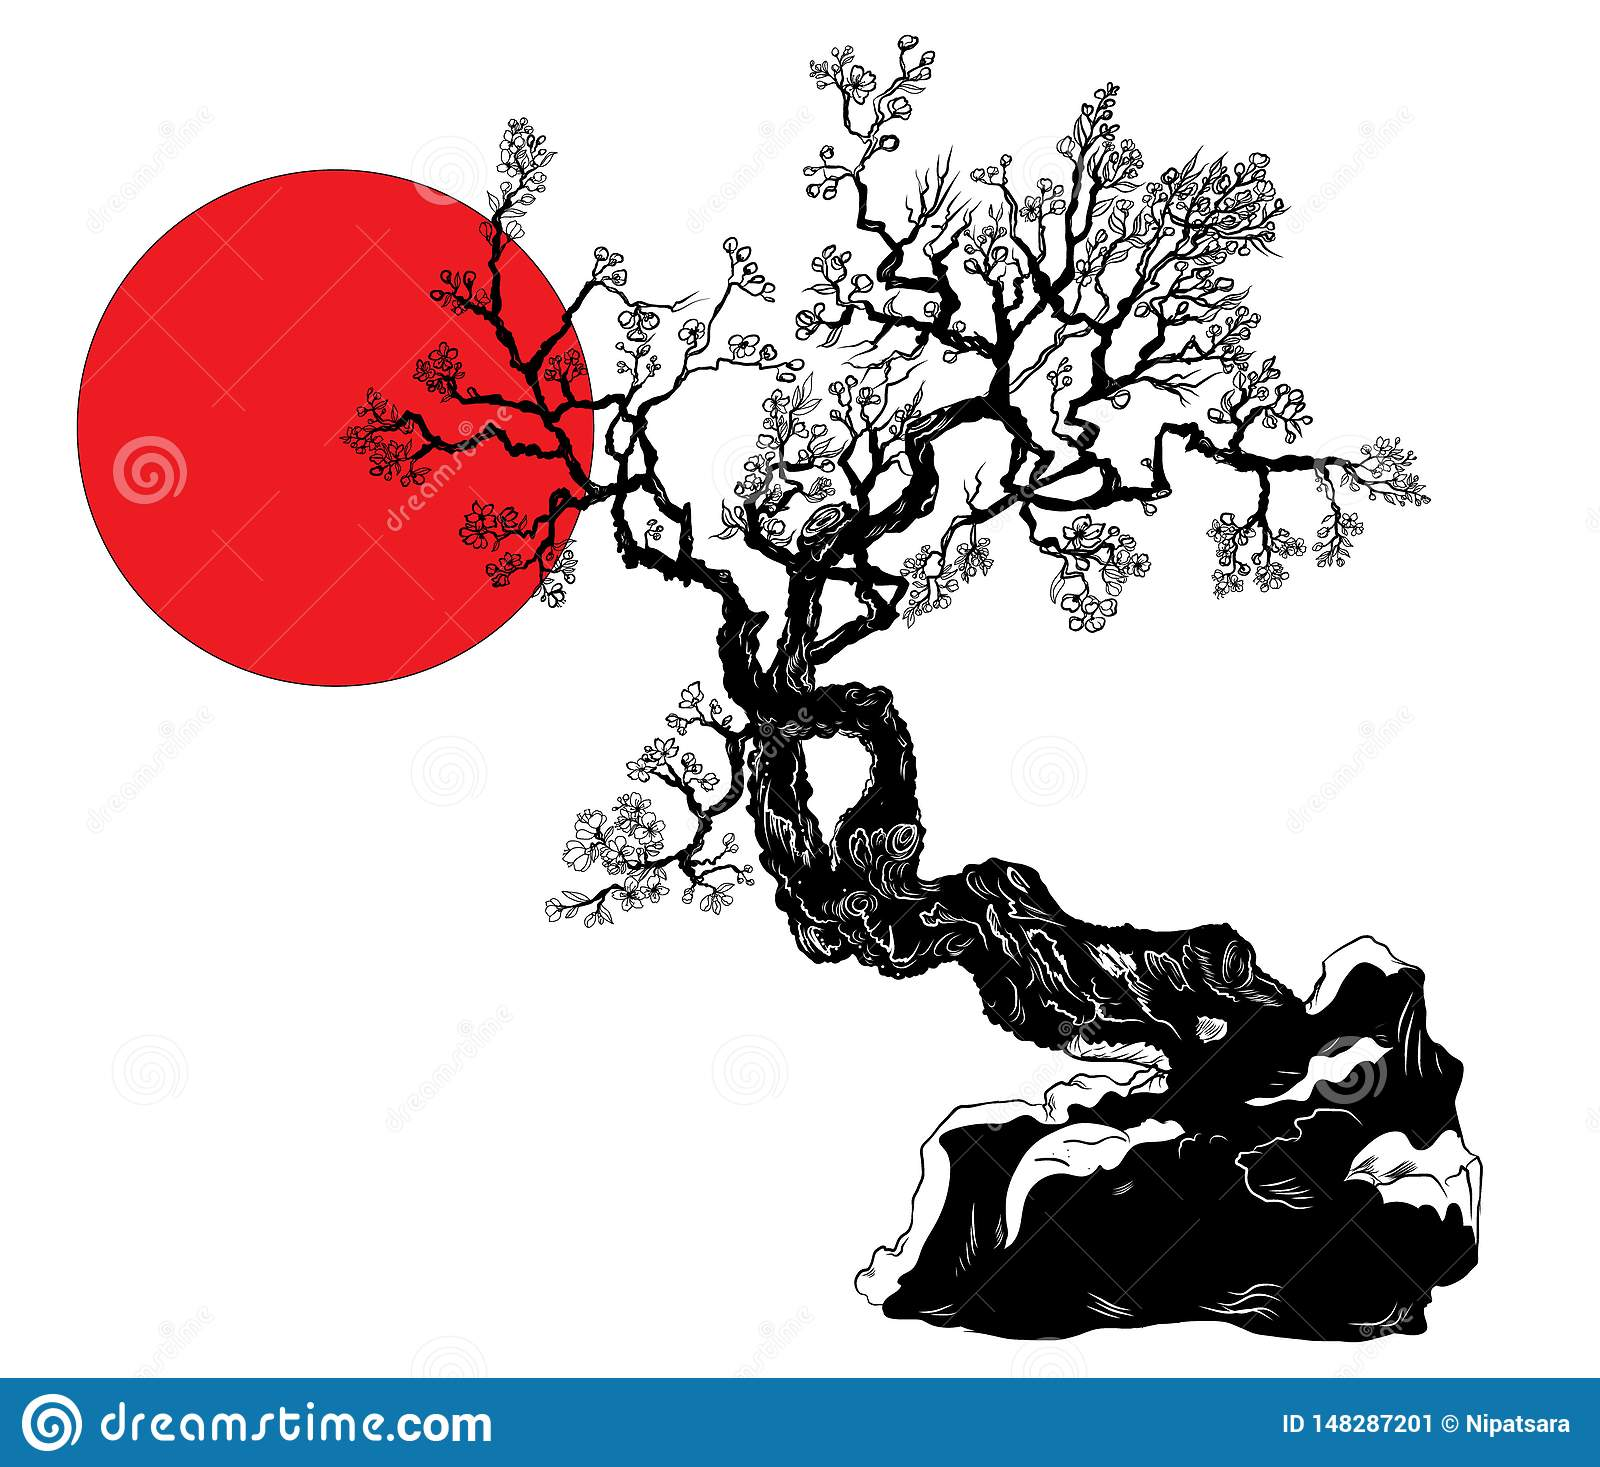 Cherry Blossom Flower Of Japan Outline And Silhouette